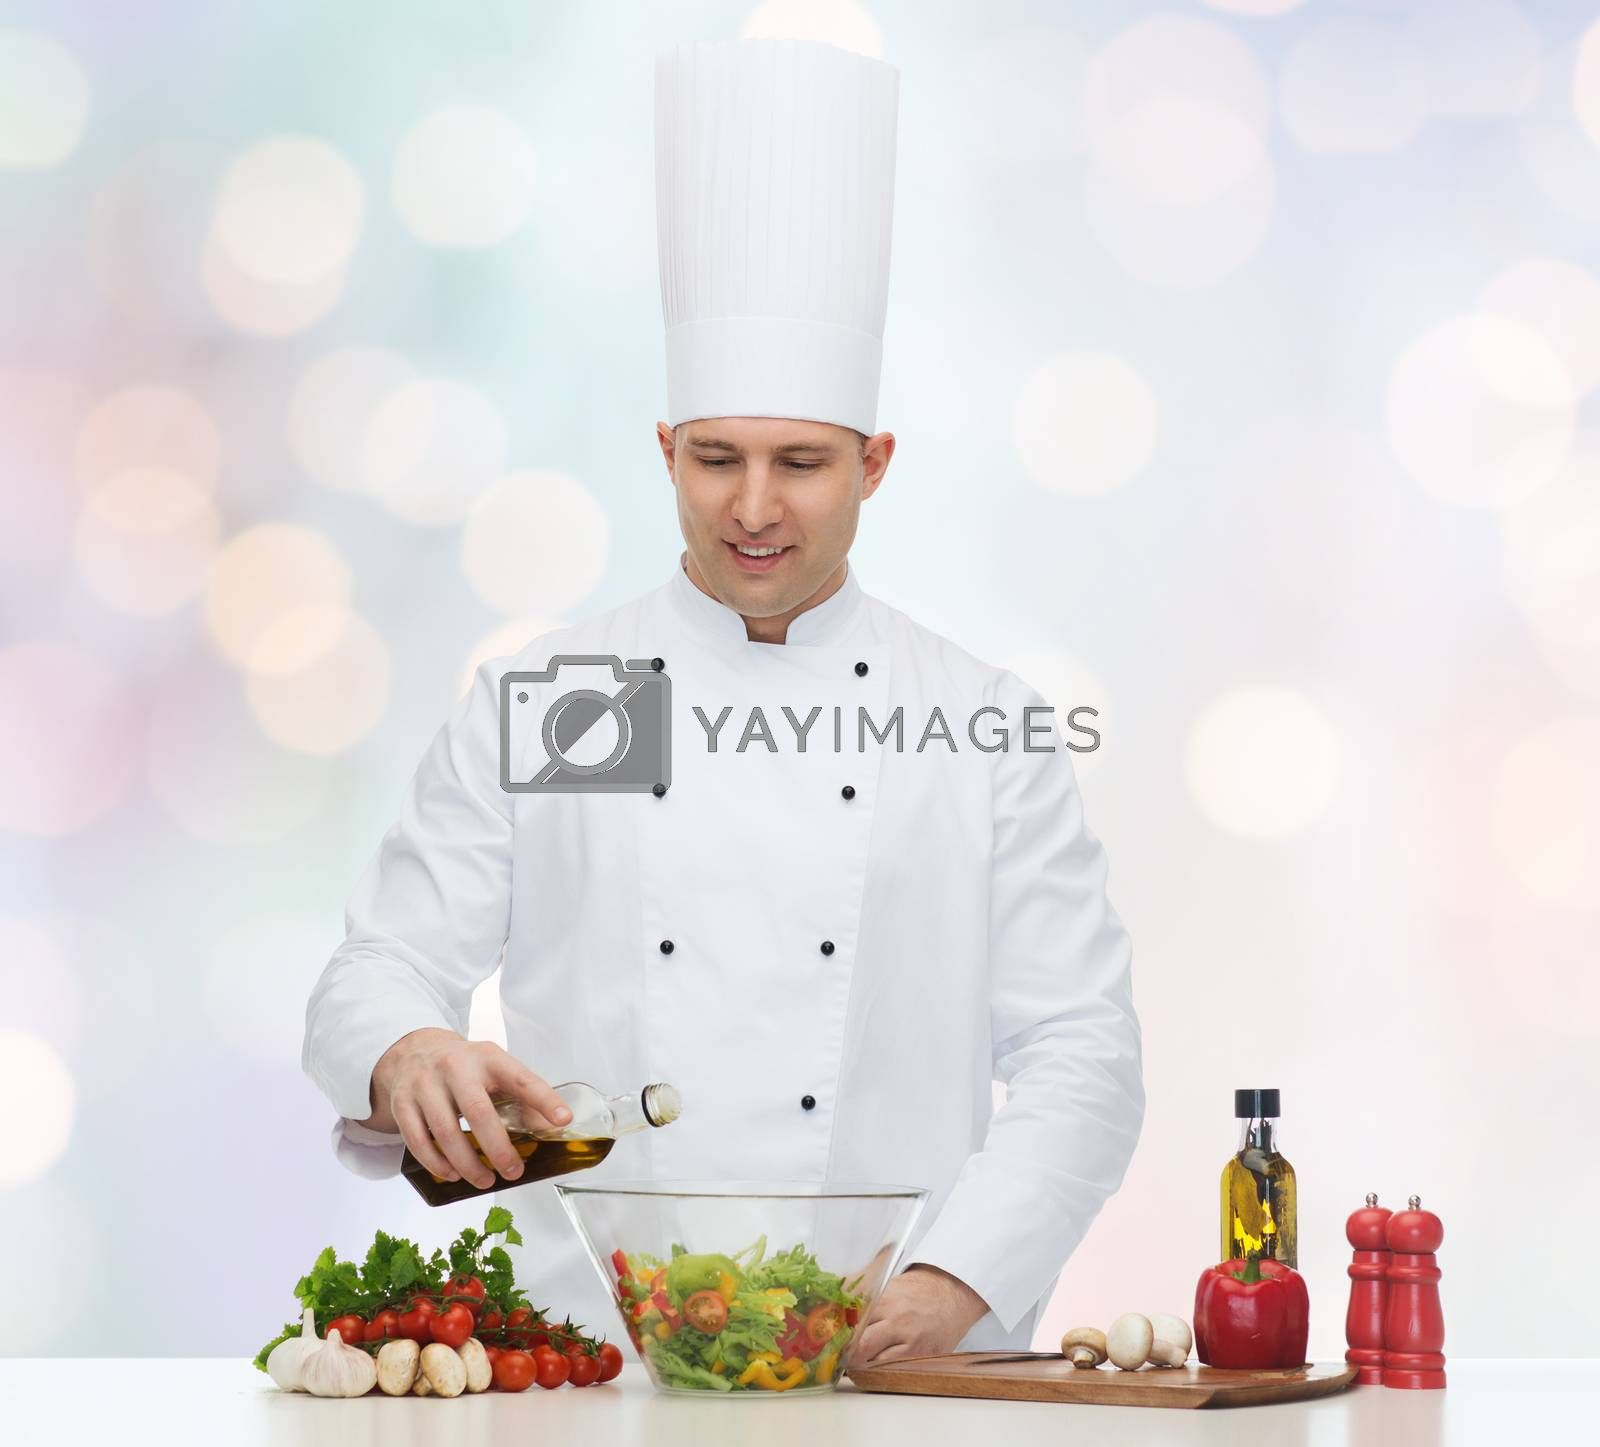 profession, vegetarian, food and people concept - happy male chef cooking salad over blue lights background